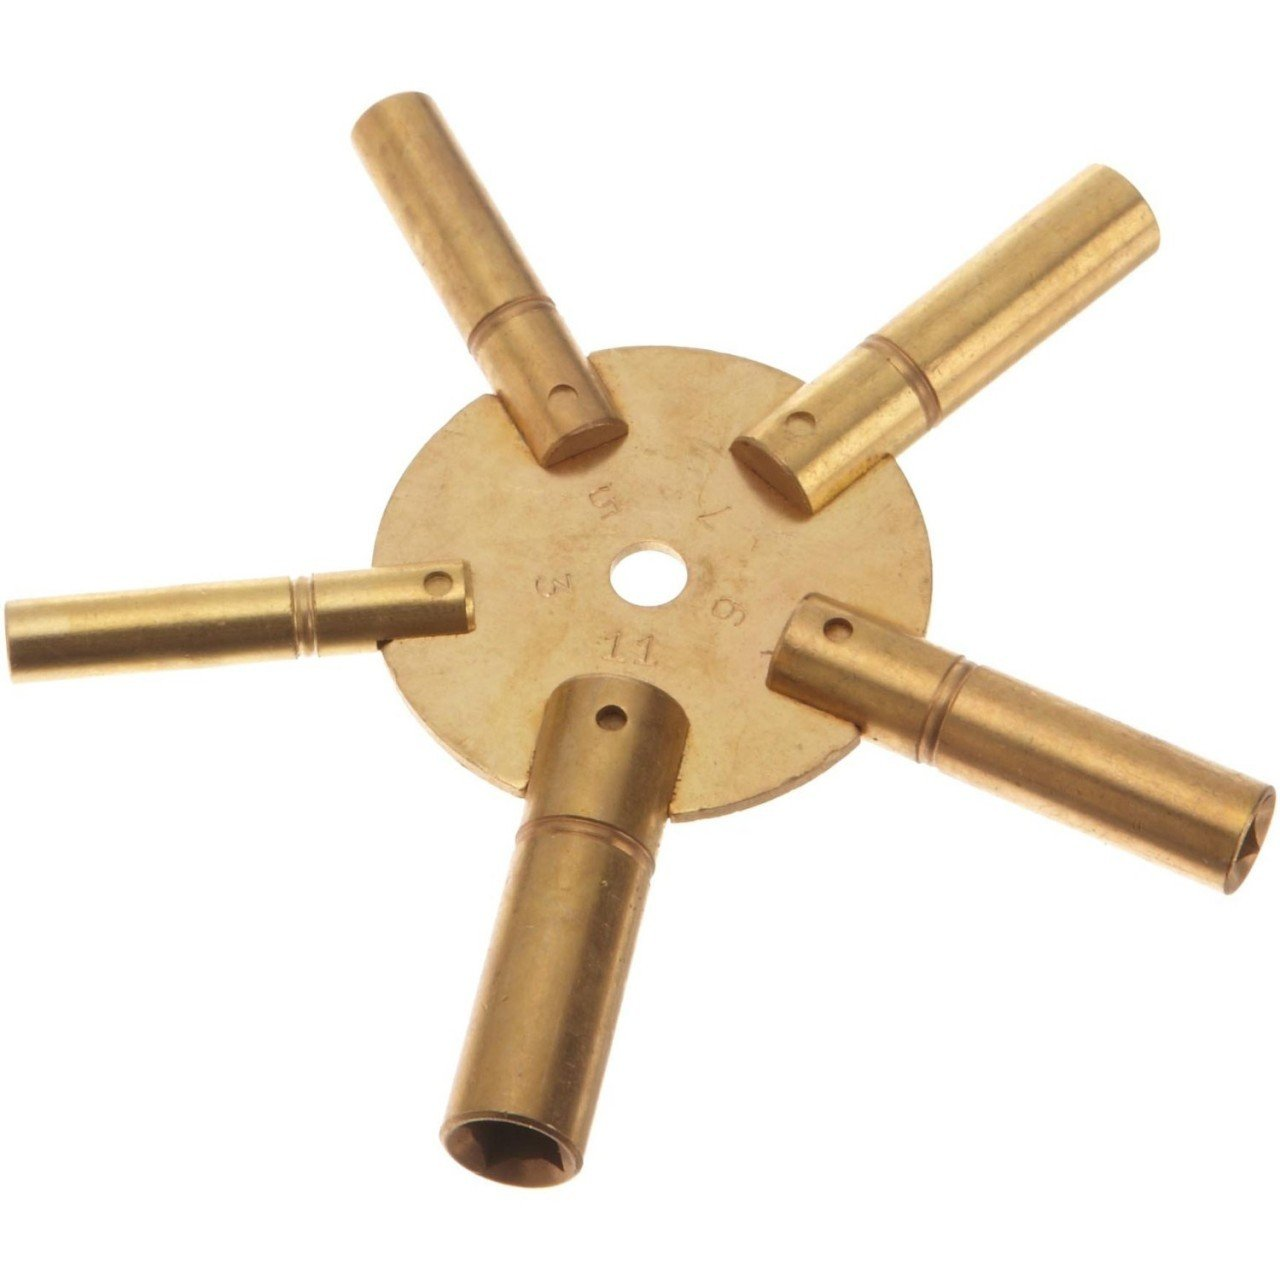 Brass Blessing 5 Size Solid Brass Clock Winding Keys 5 Odd Sizes from 5023